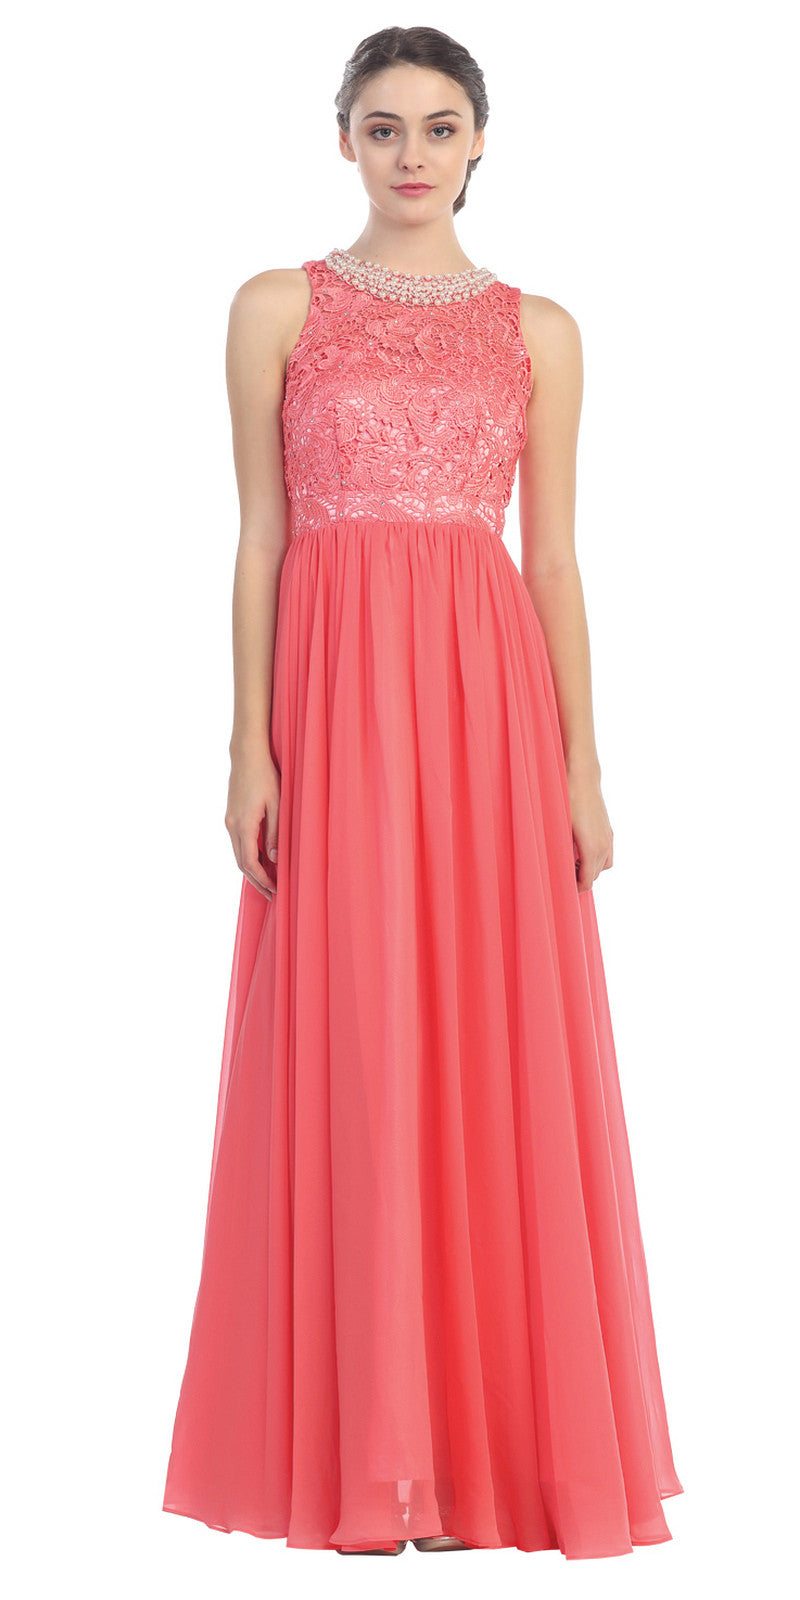 b7b6dfb698f Empire Waist Chiffon Evening Gown Coral A Line Full Length. Tap to expand